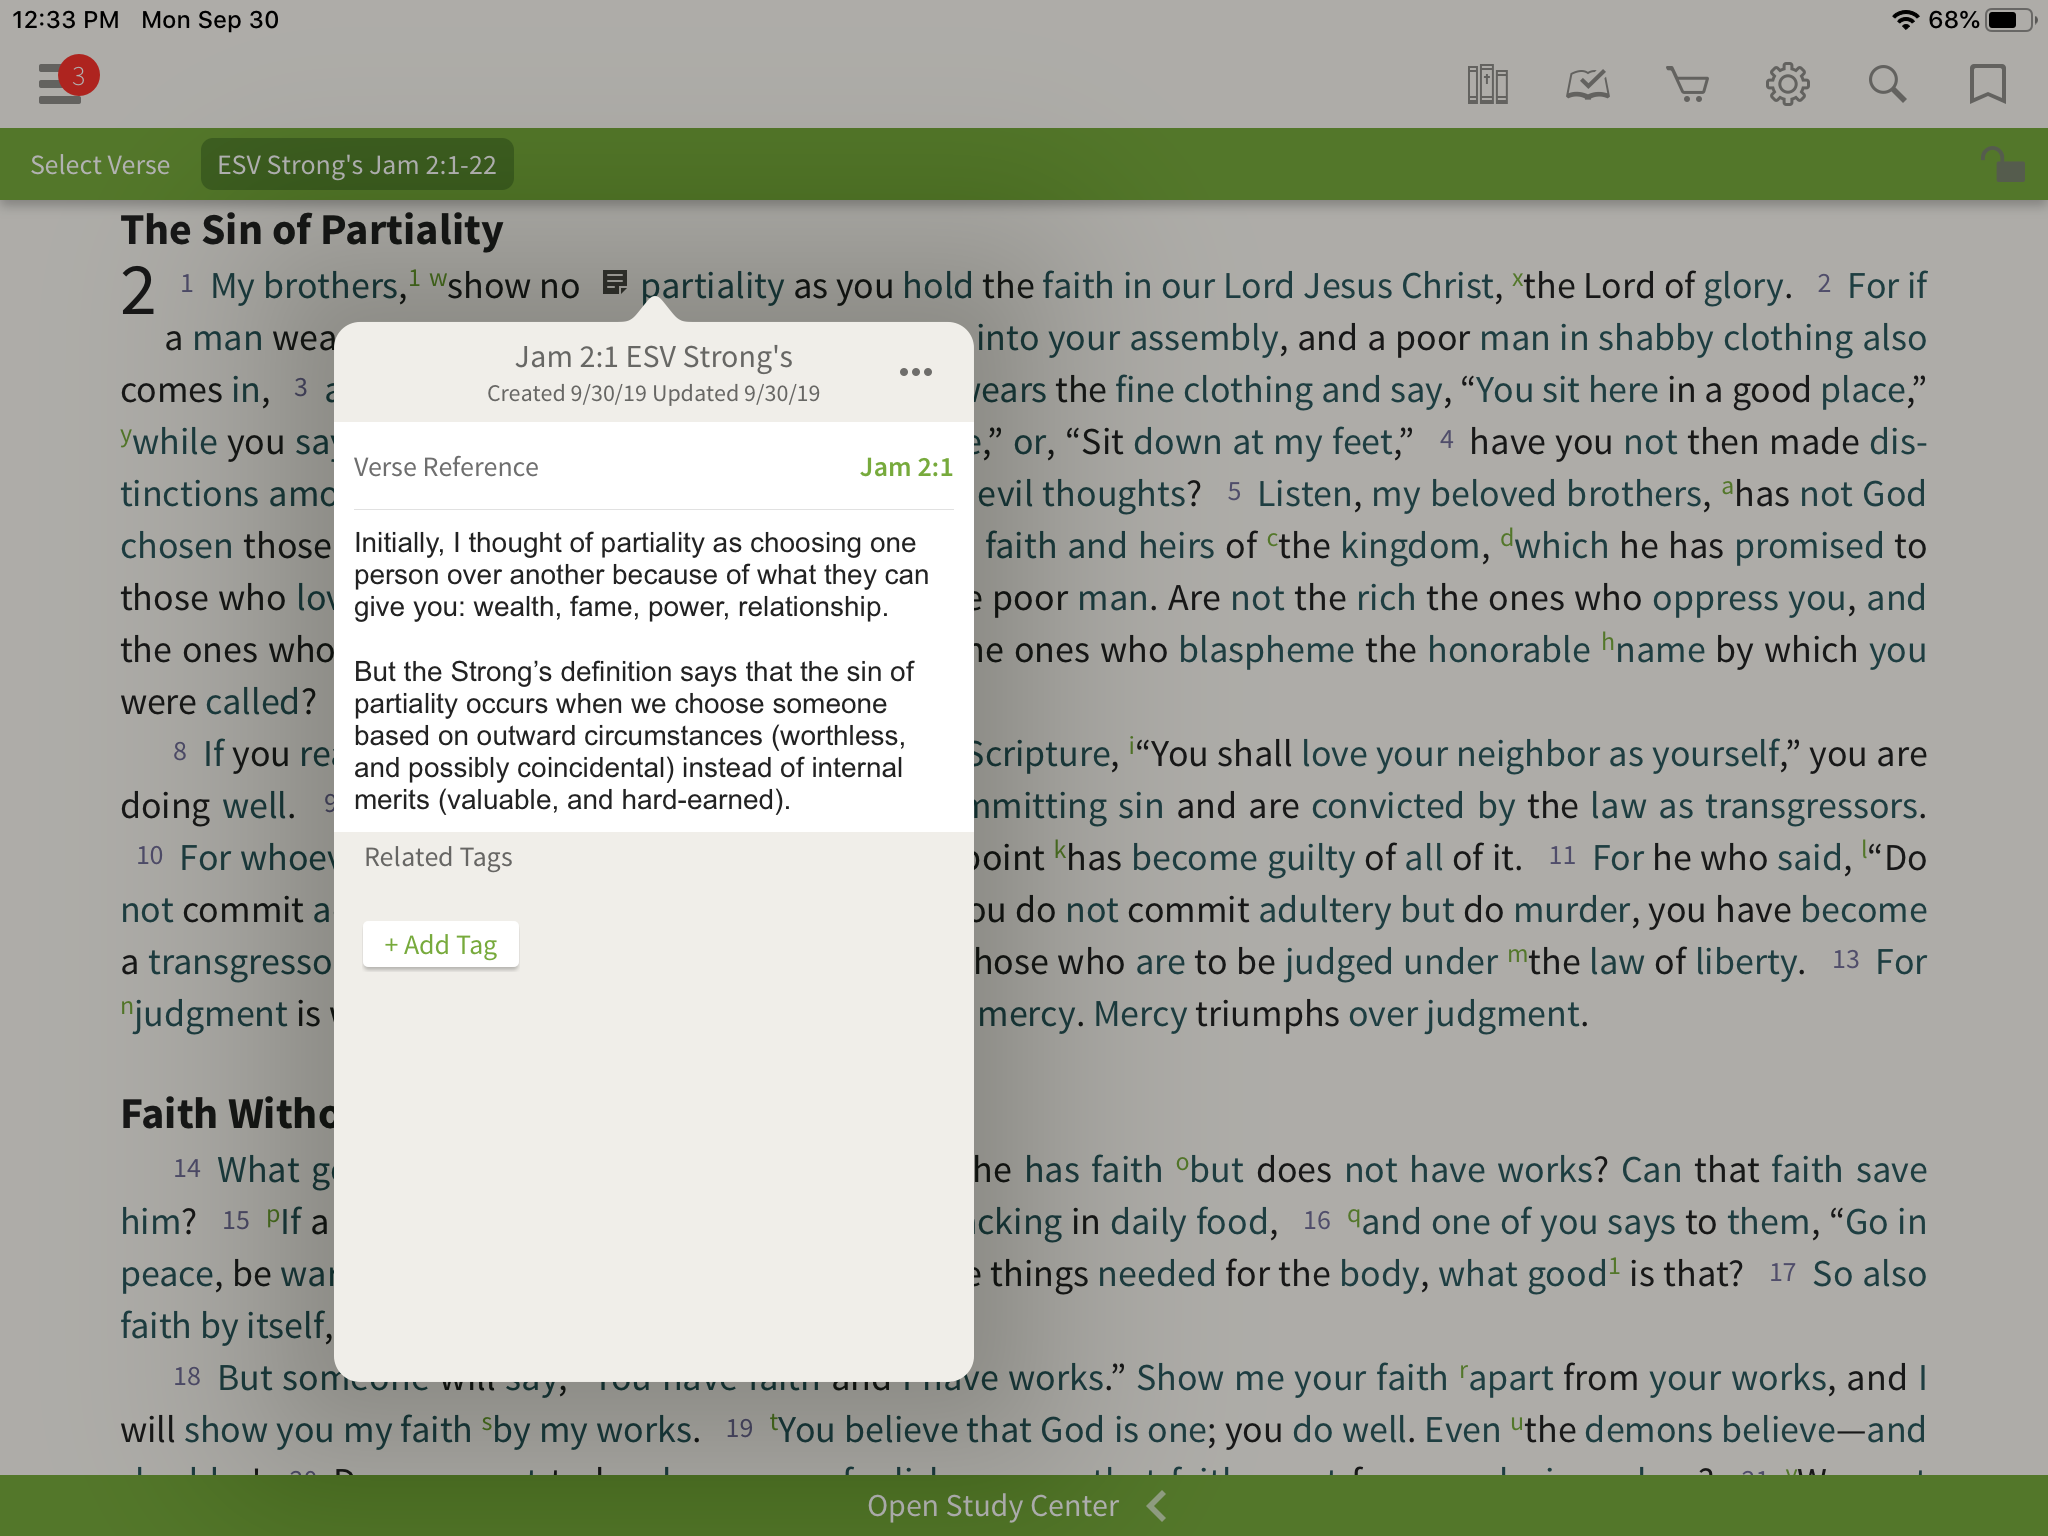 Taking Notes in the Olive Tree Bible App